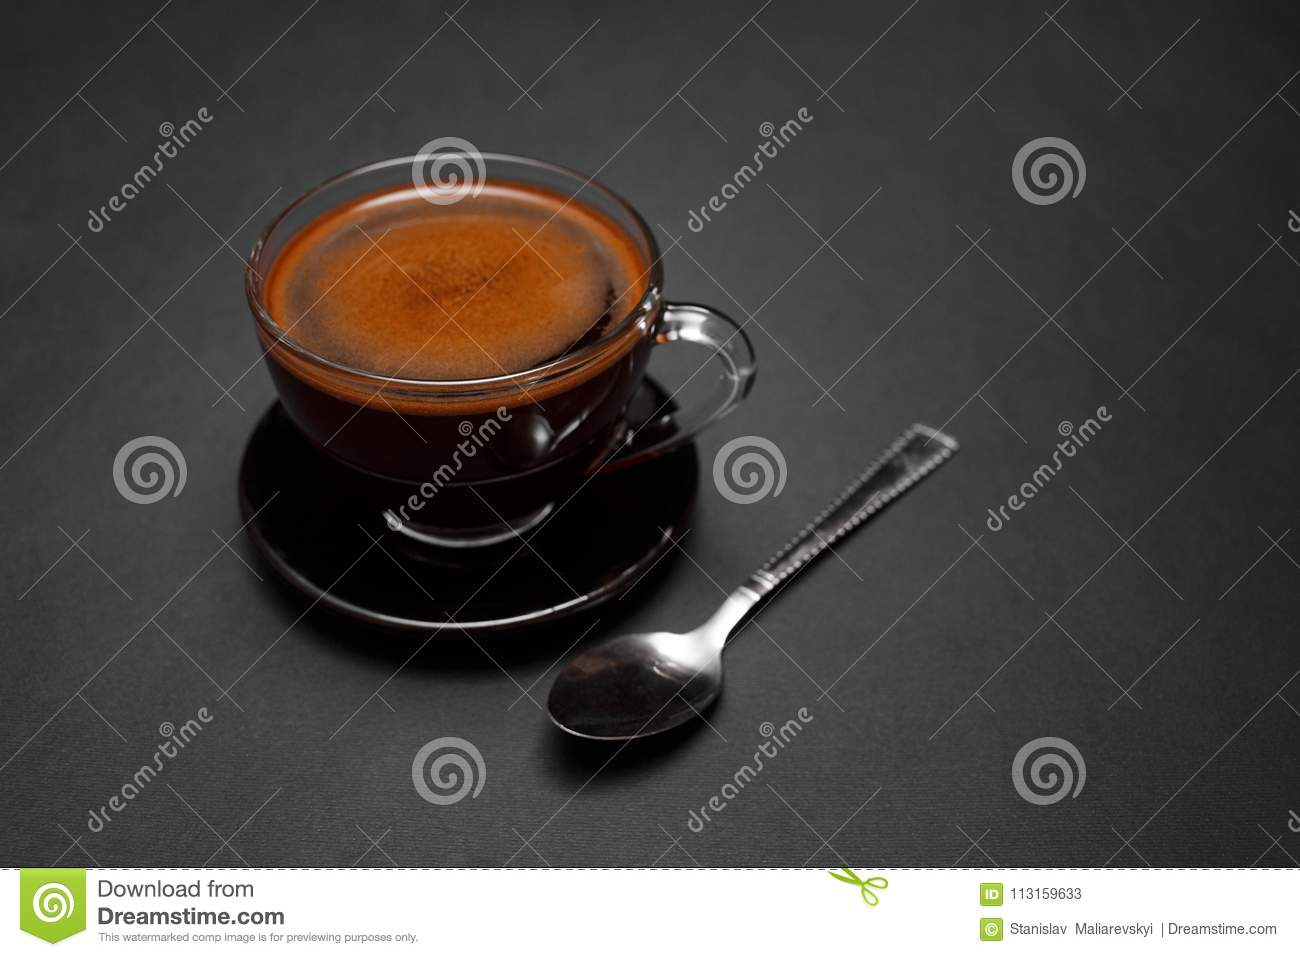 Black, natural, fragrant coffee in the transparent cup on a black background.